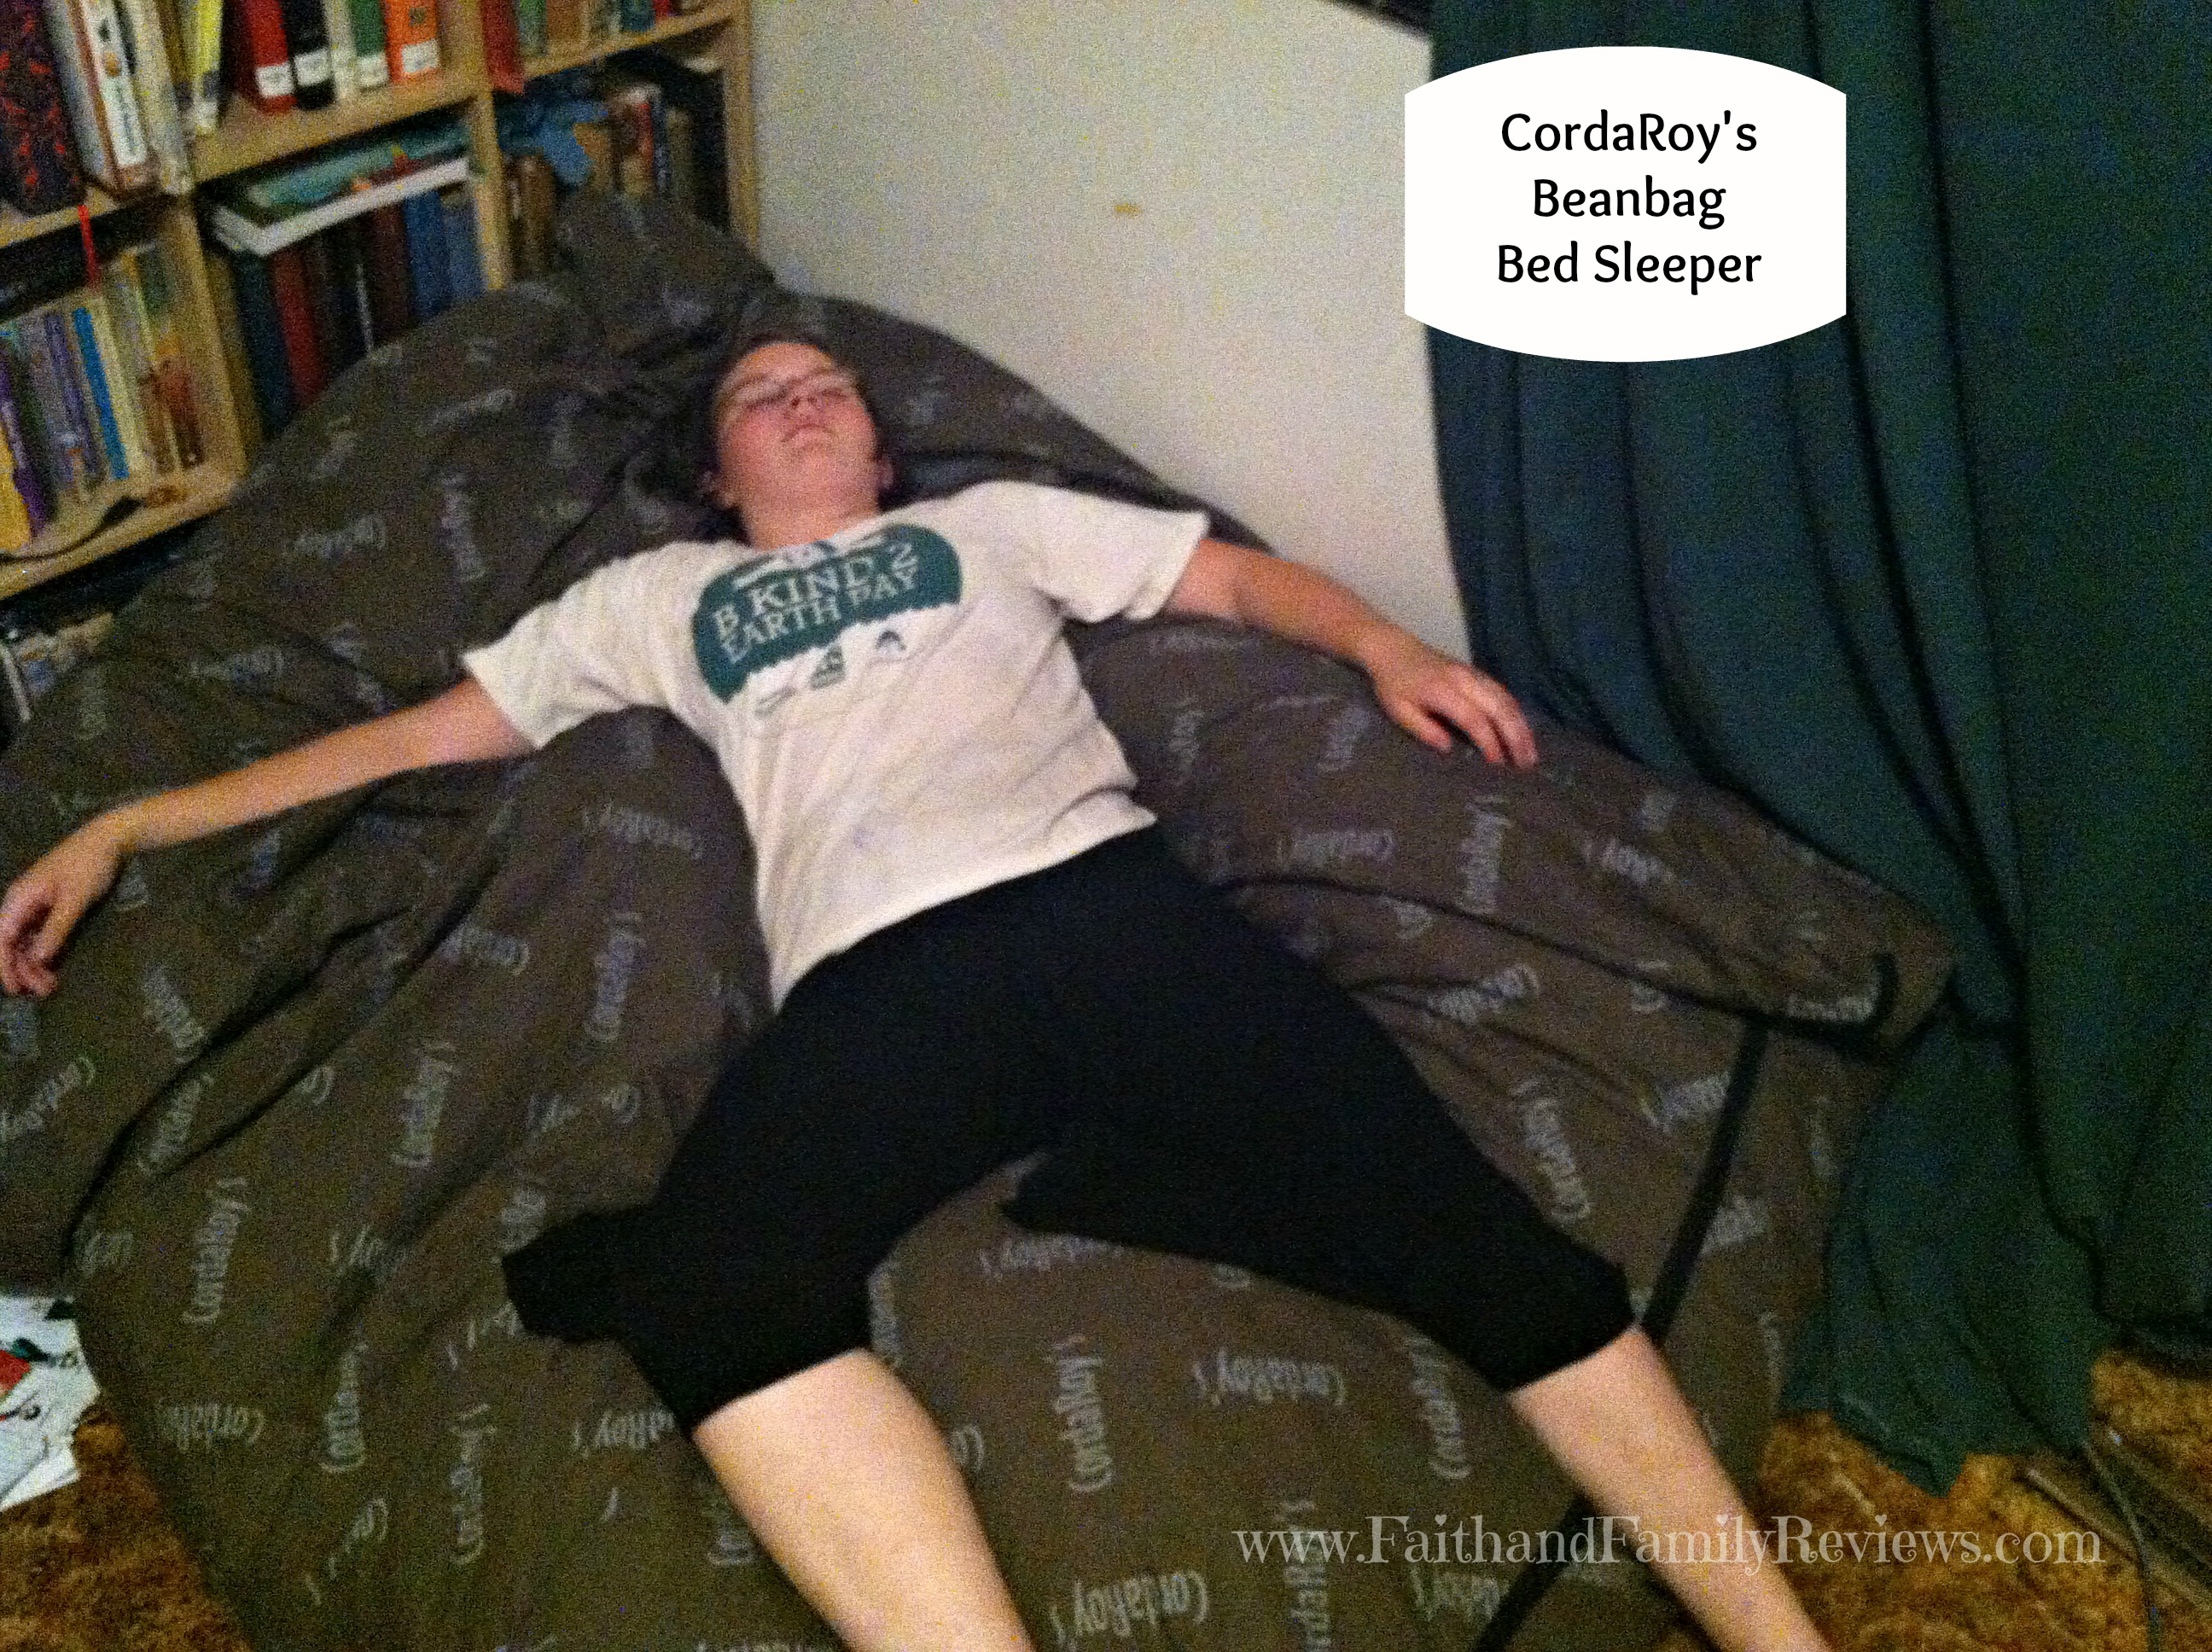 CordaRoys Beanbag Bed Sleeper